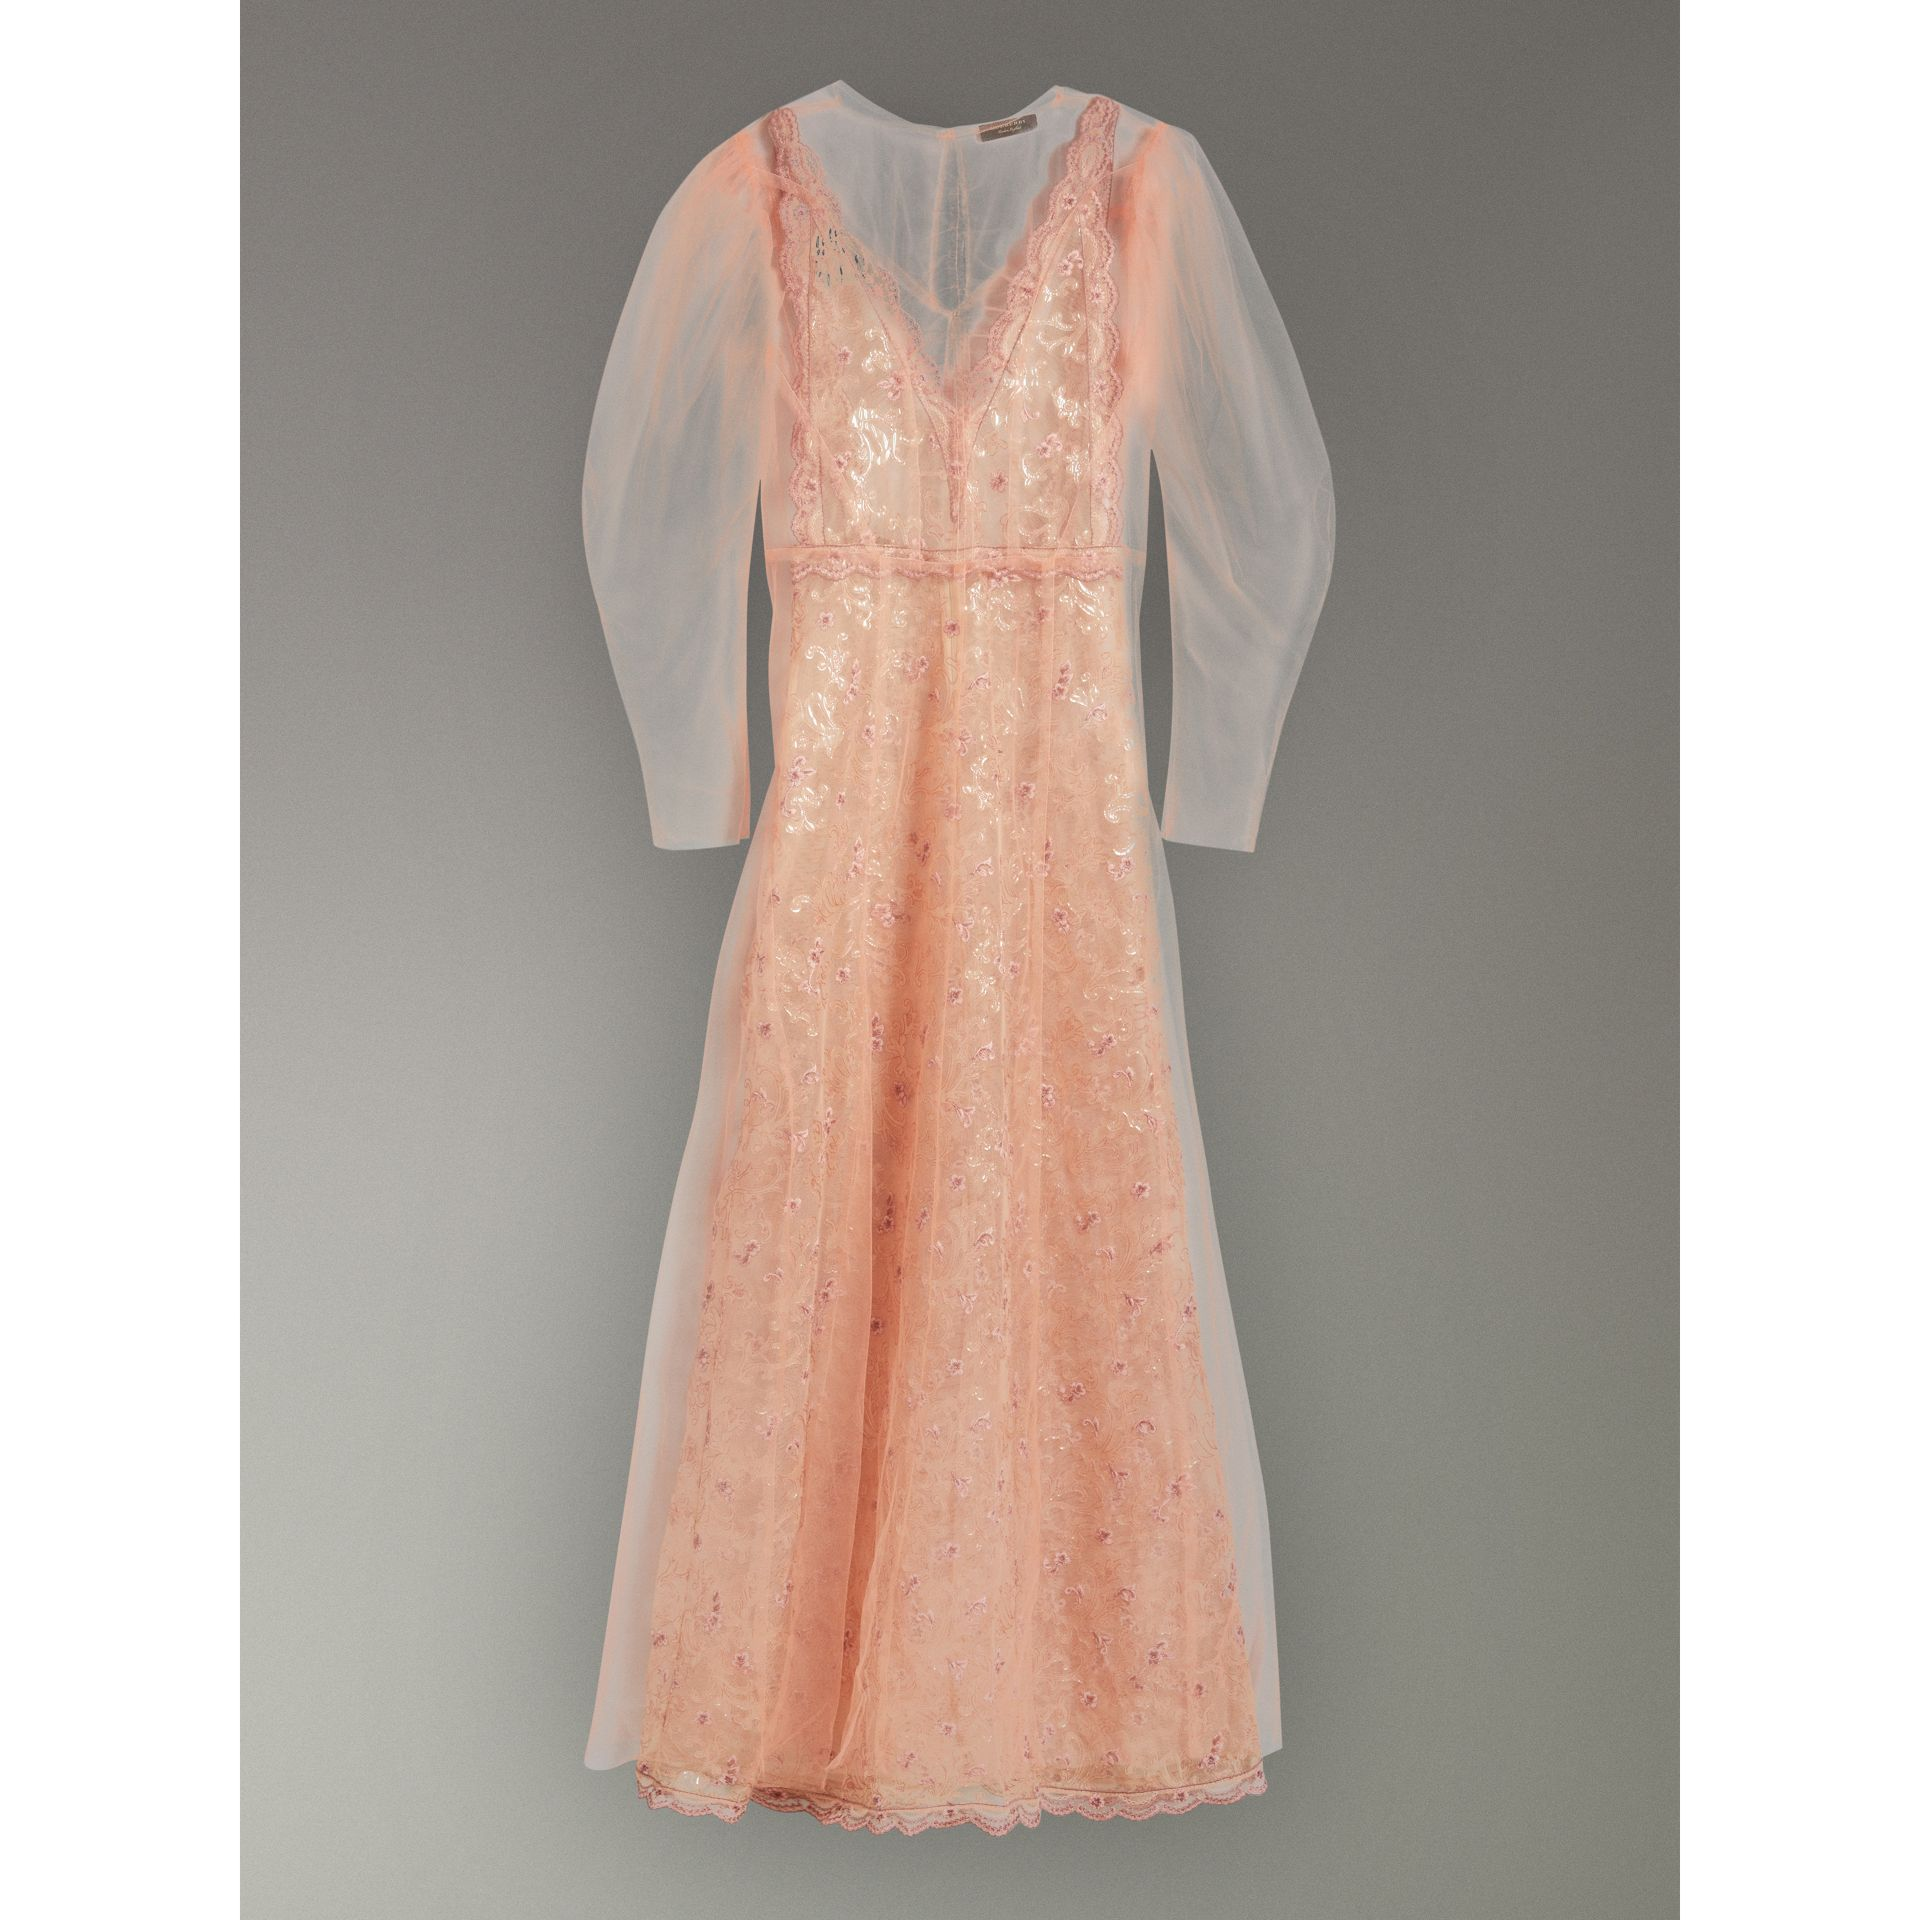 Floral-embroidered Puff-sleeve Dress in Dusty Pink - Women | Burberry United States - gallery image 3